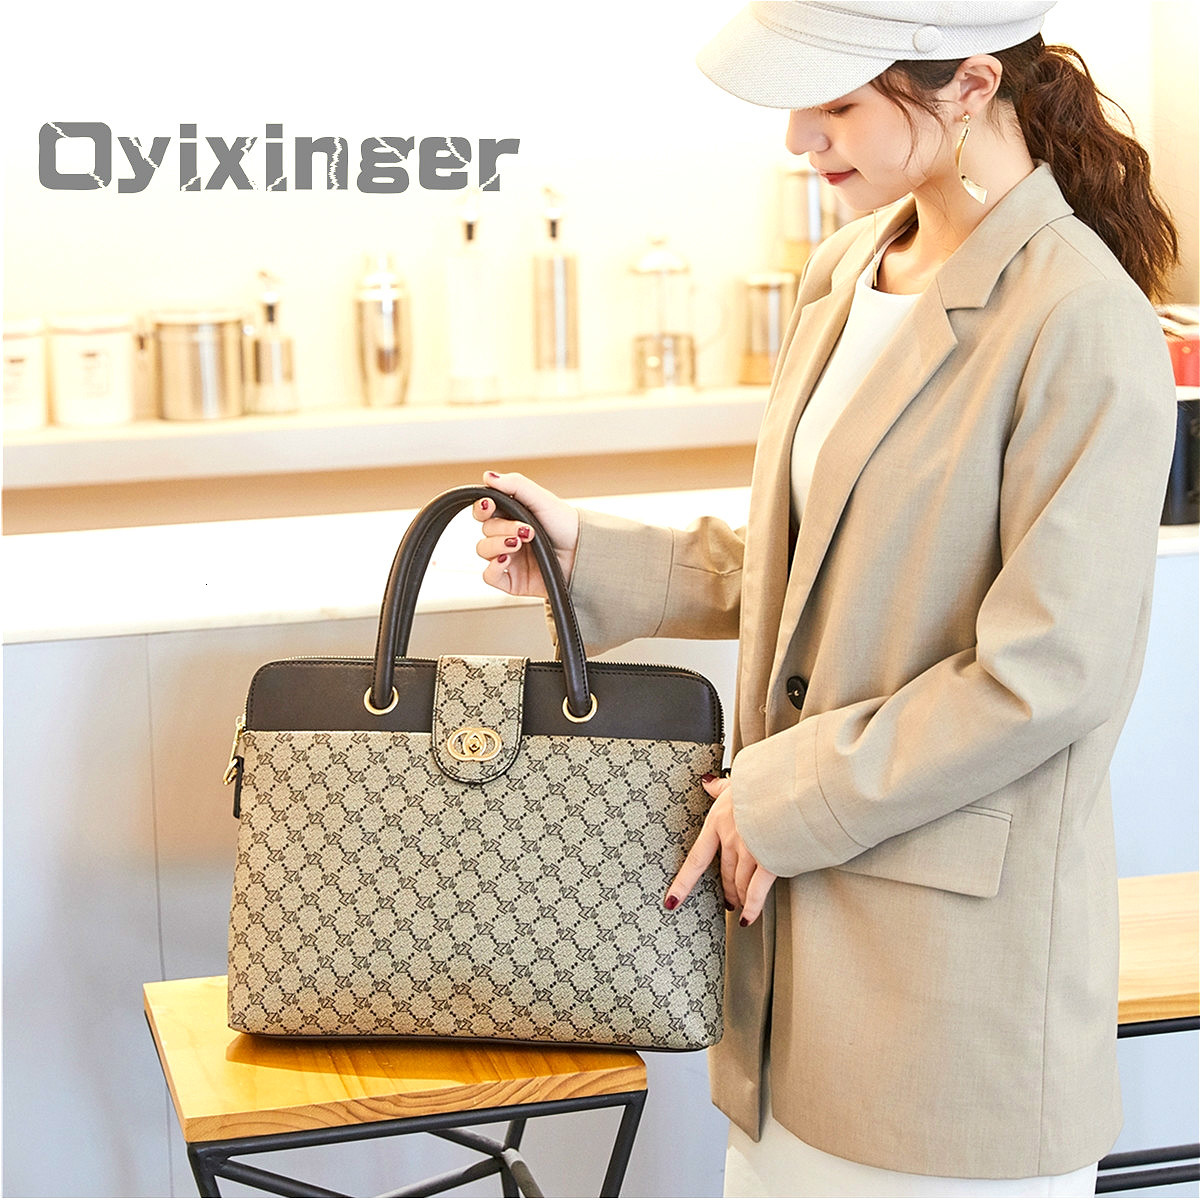 2020 Fashion Women's Leather Briefcases Women Laptop Briefcase Work Office Bag Ladies Crossbody Bags For Woman Business Handbags| | - AliExpress